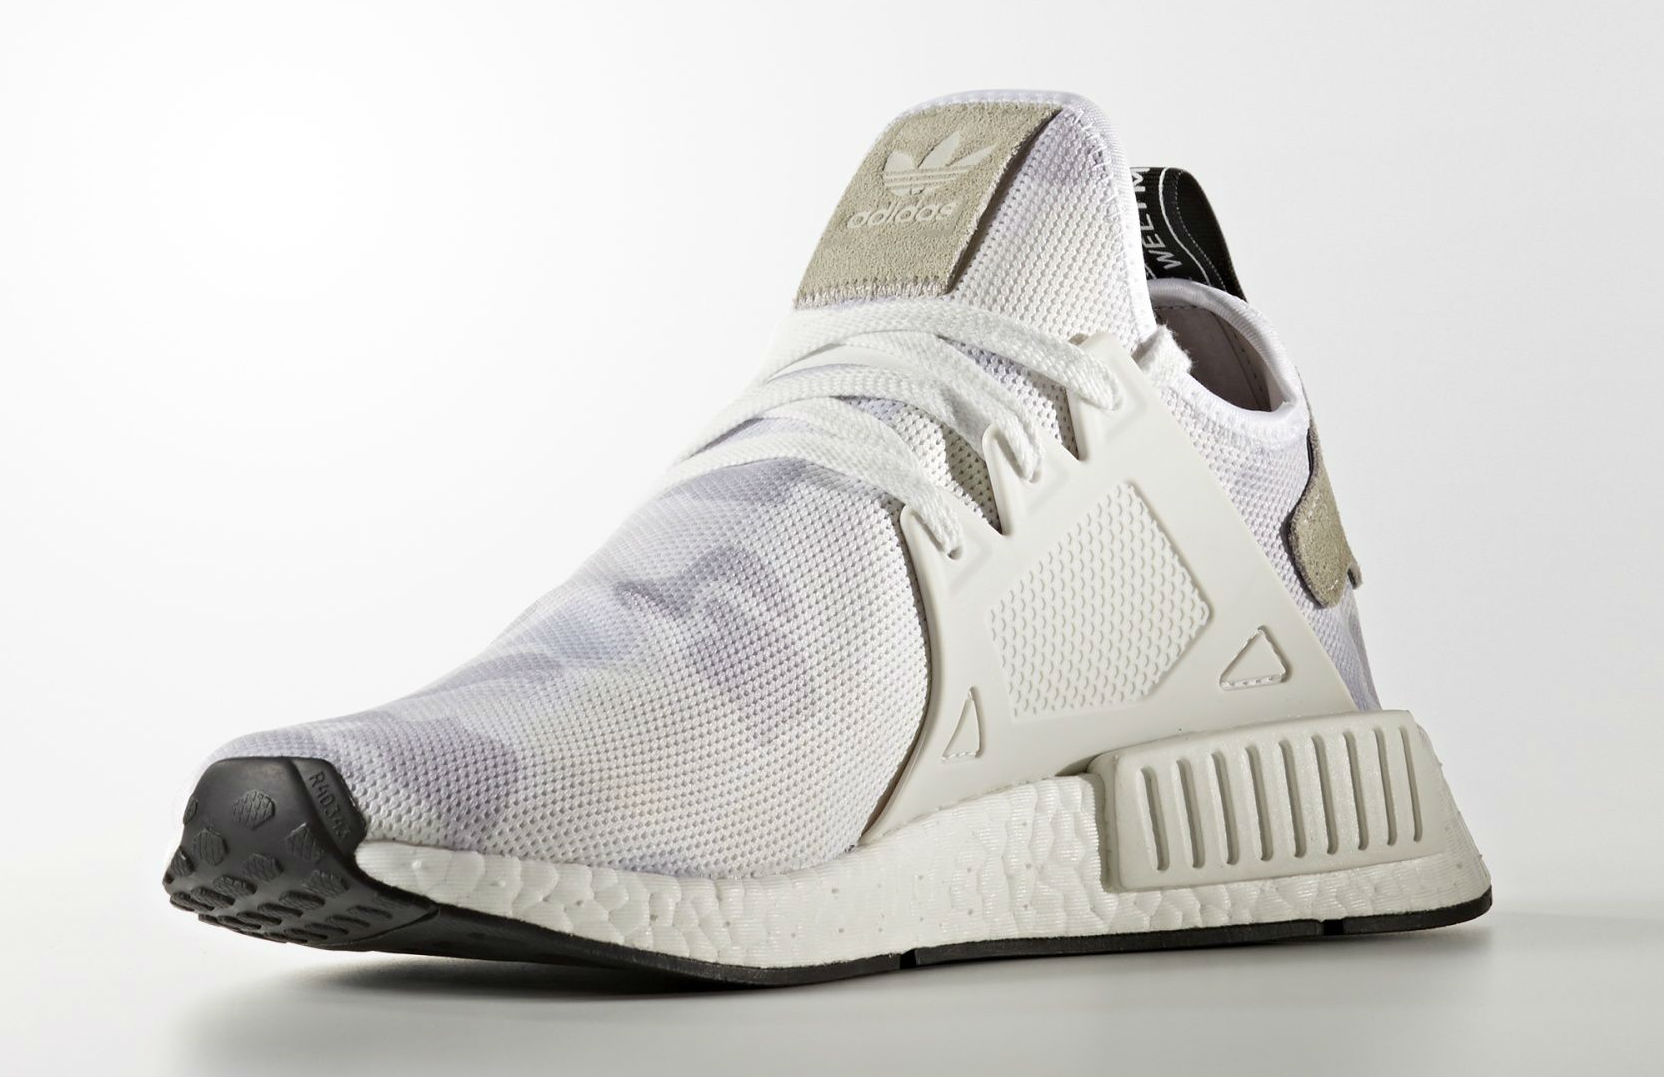 newest b778d 40328 adidas-nmd-xr1-camo-white-4_vwl6wf - WearTesters